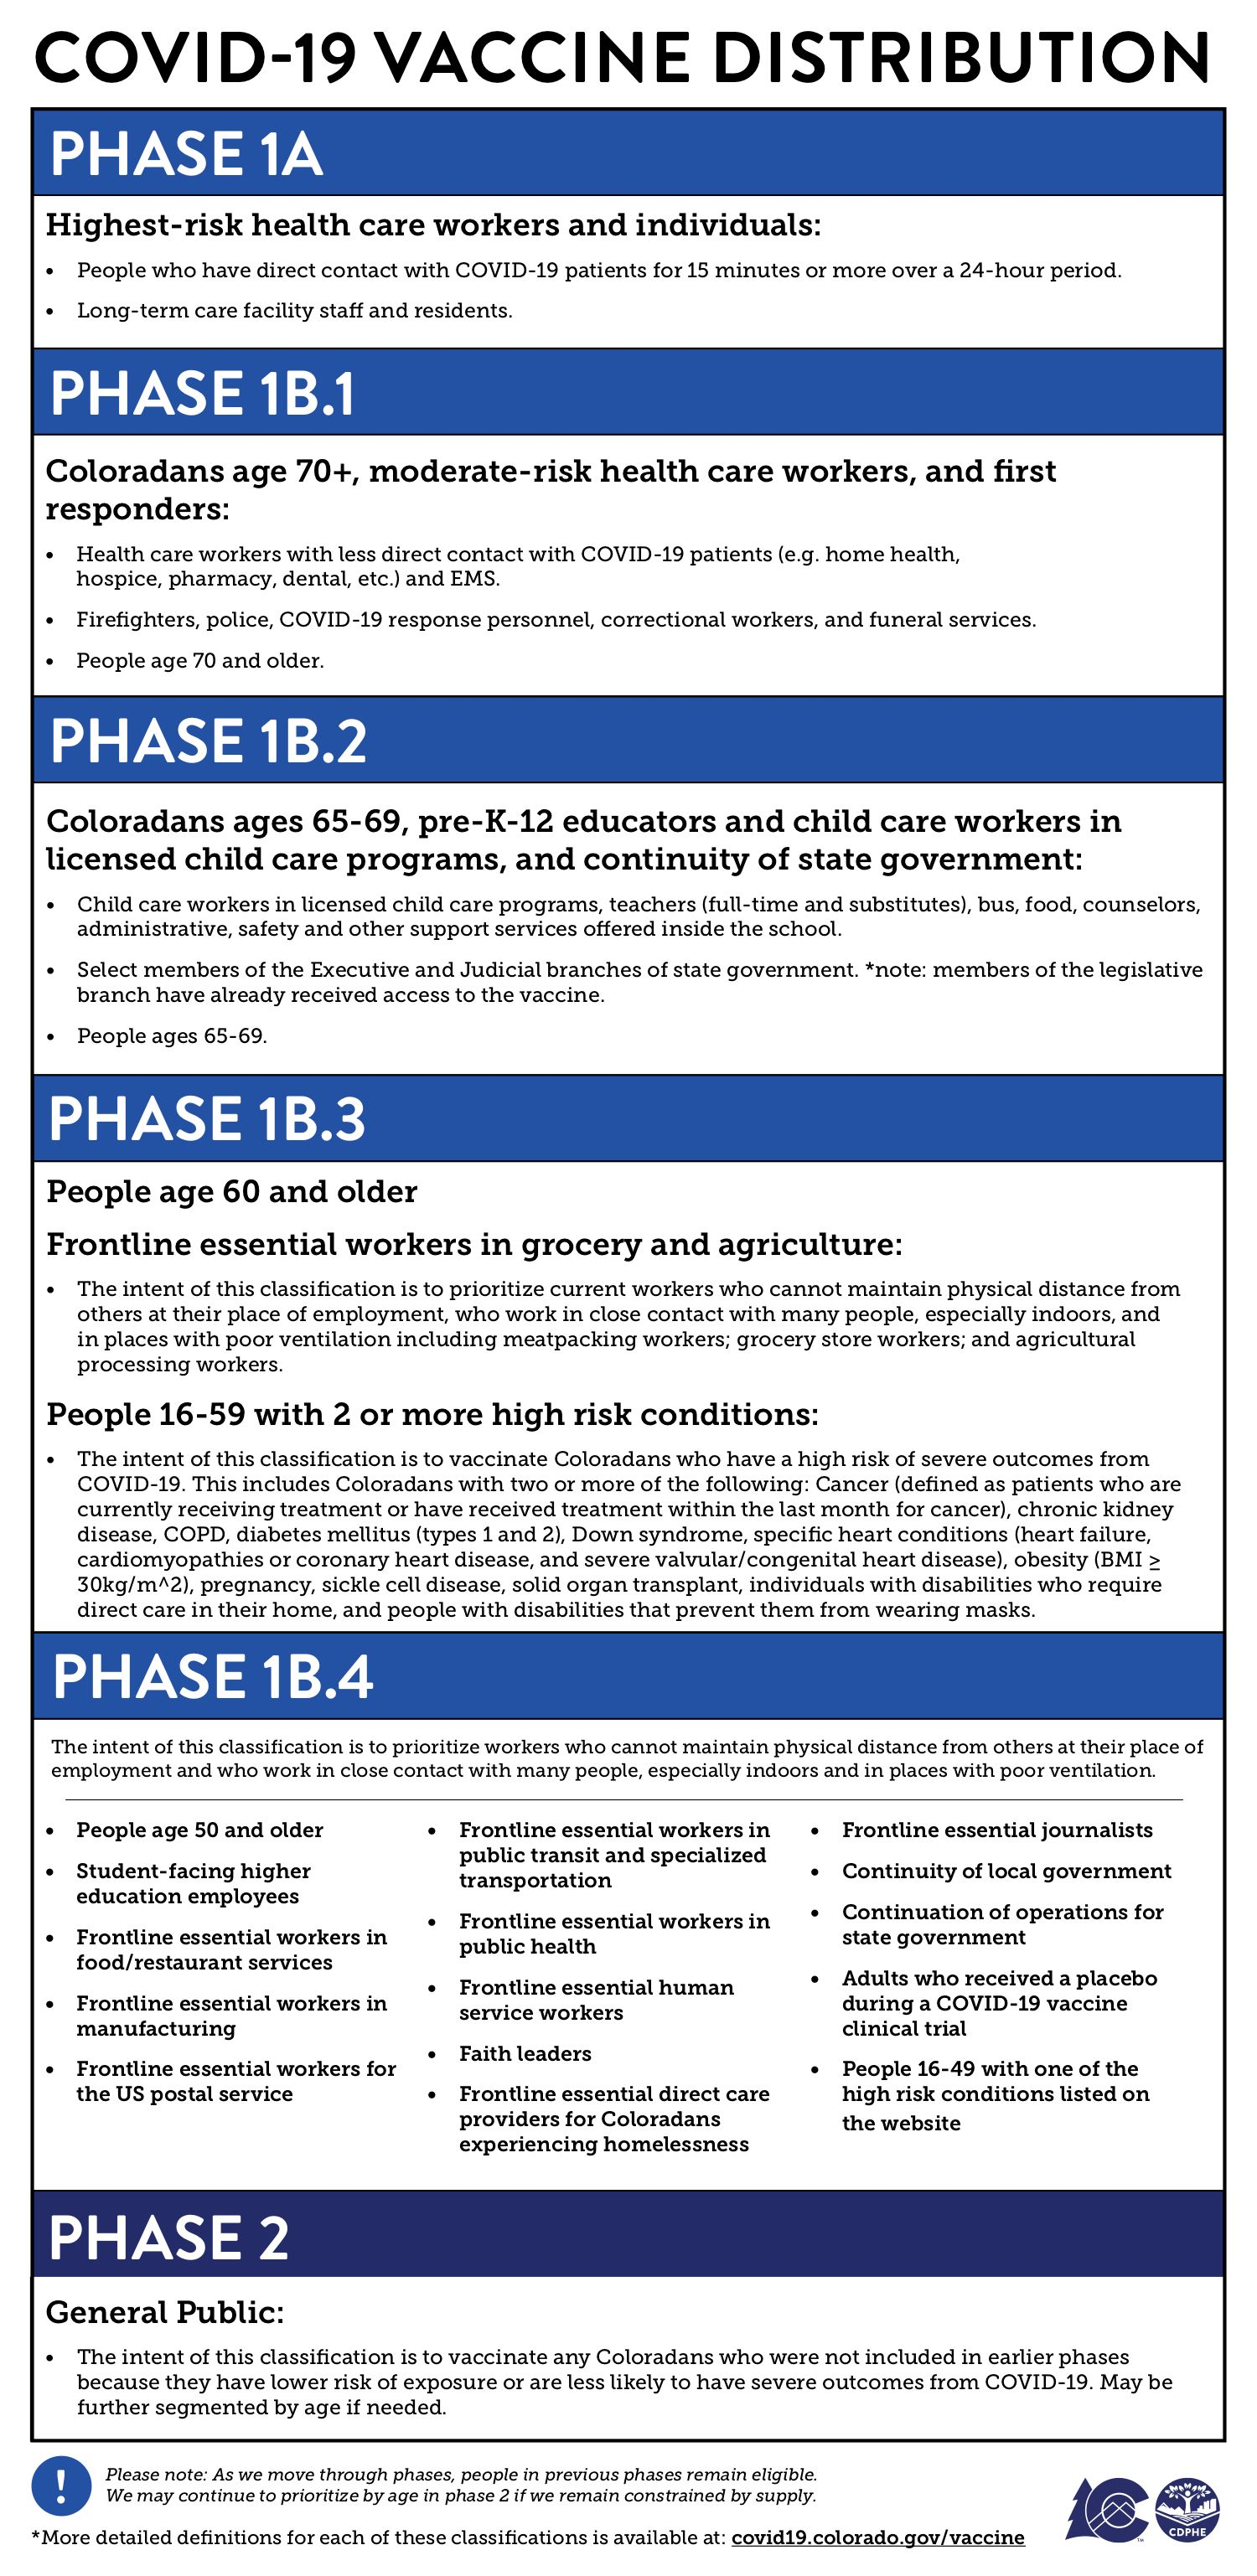 vaccine phases for providers 2.26.21.jpg